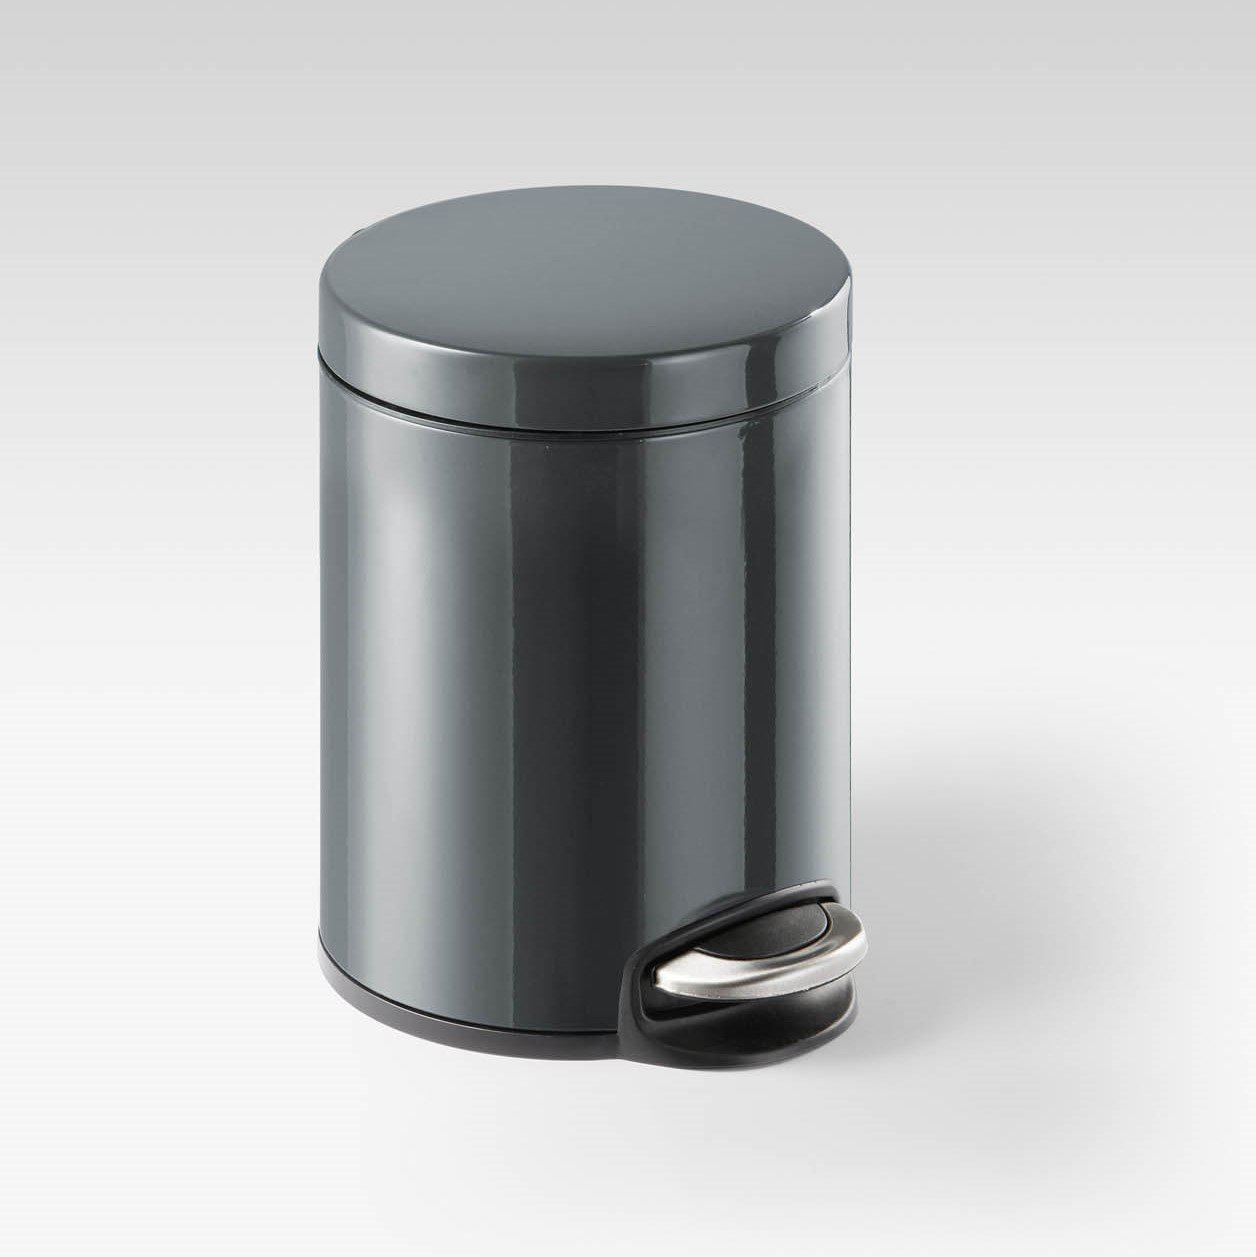 Round Pedal Waste Rubbish Bin with Smooth Silent Close Lid 5L,12L or 20L in Powder Coated Metal-5L-Distinct Designs (London) Ltd